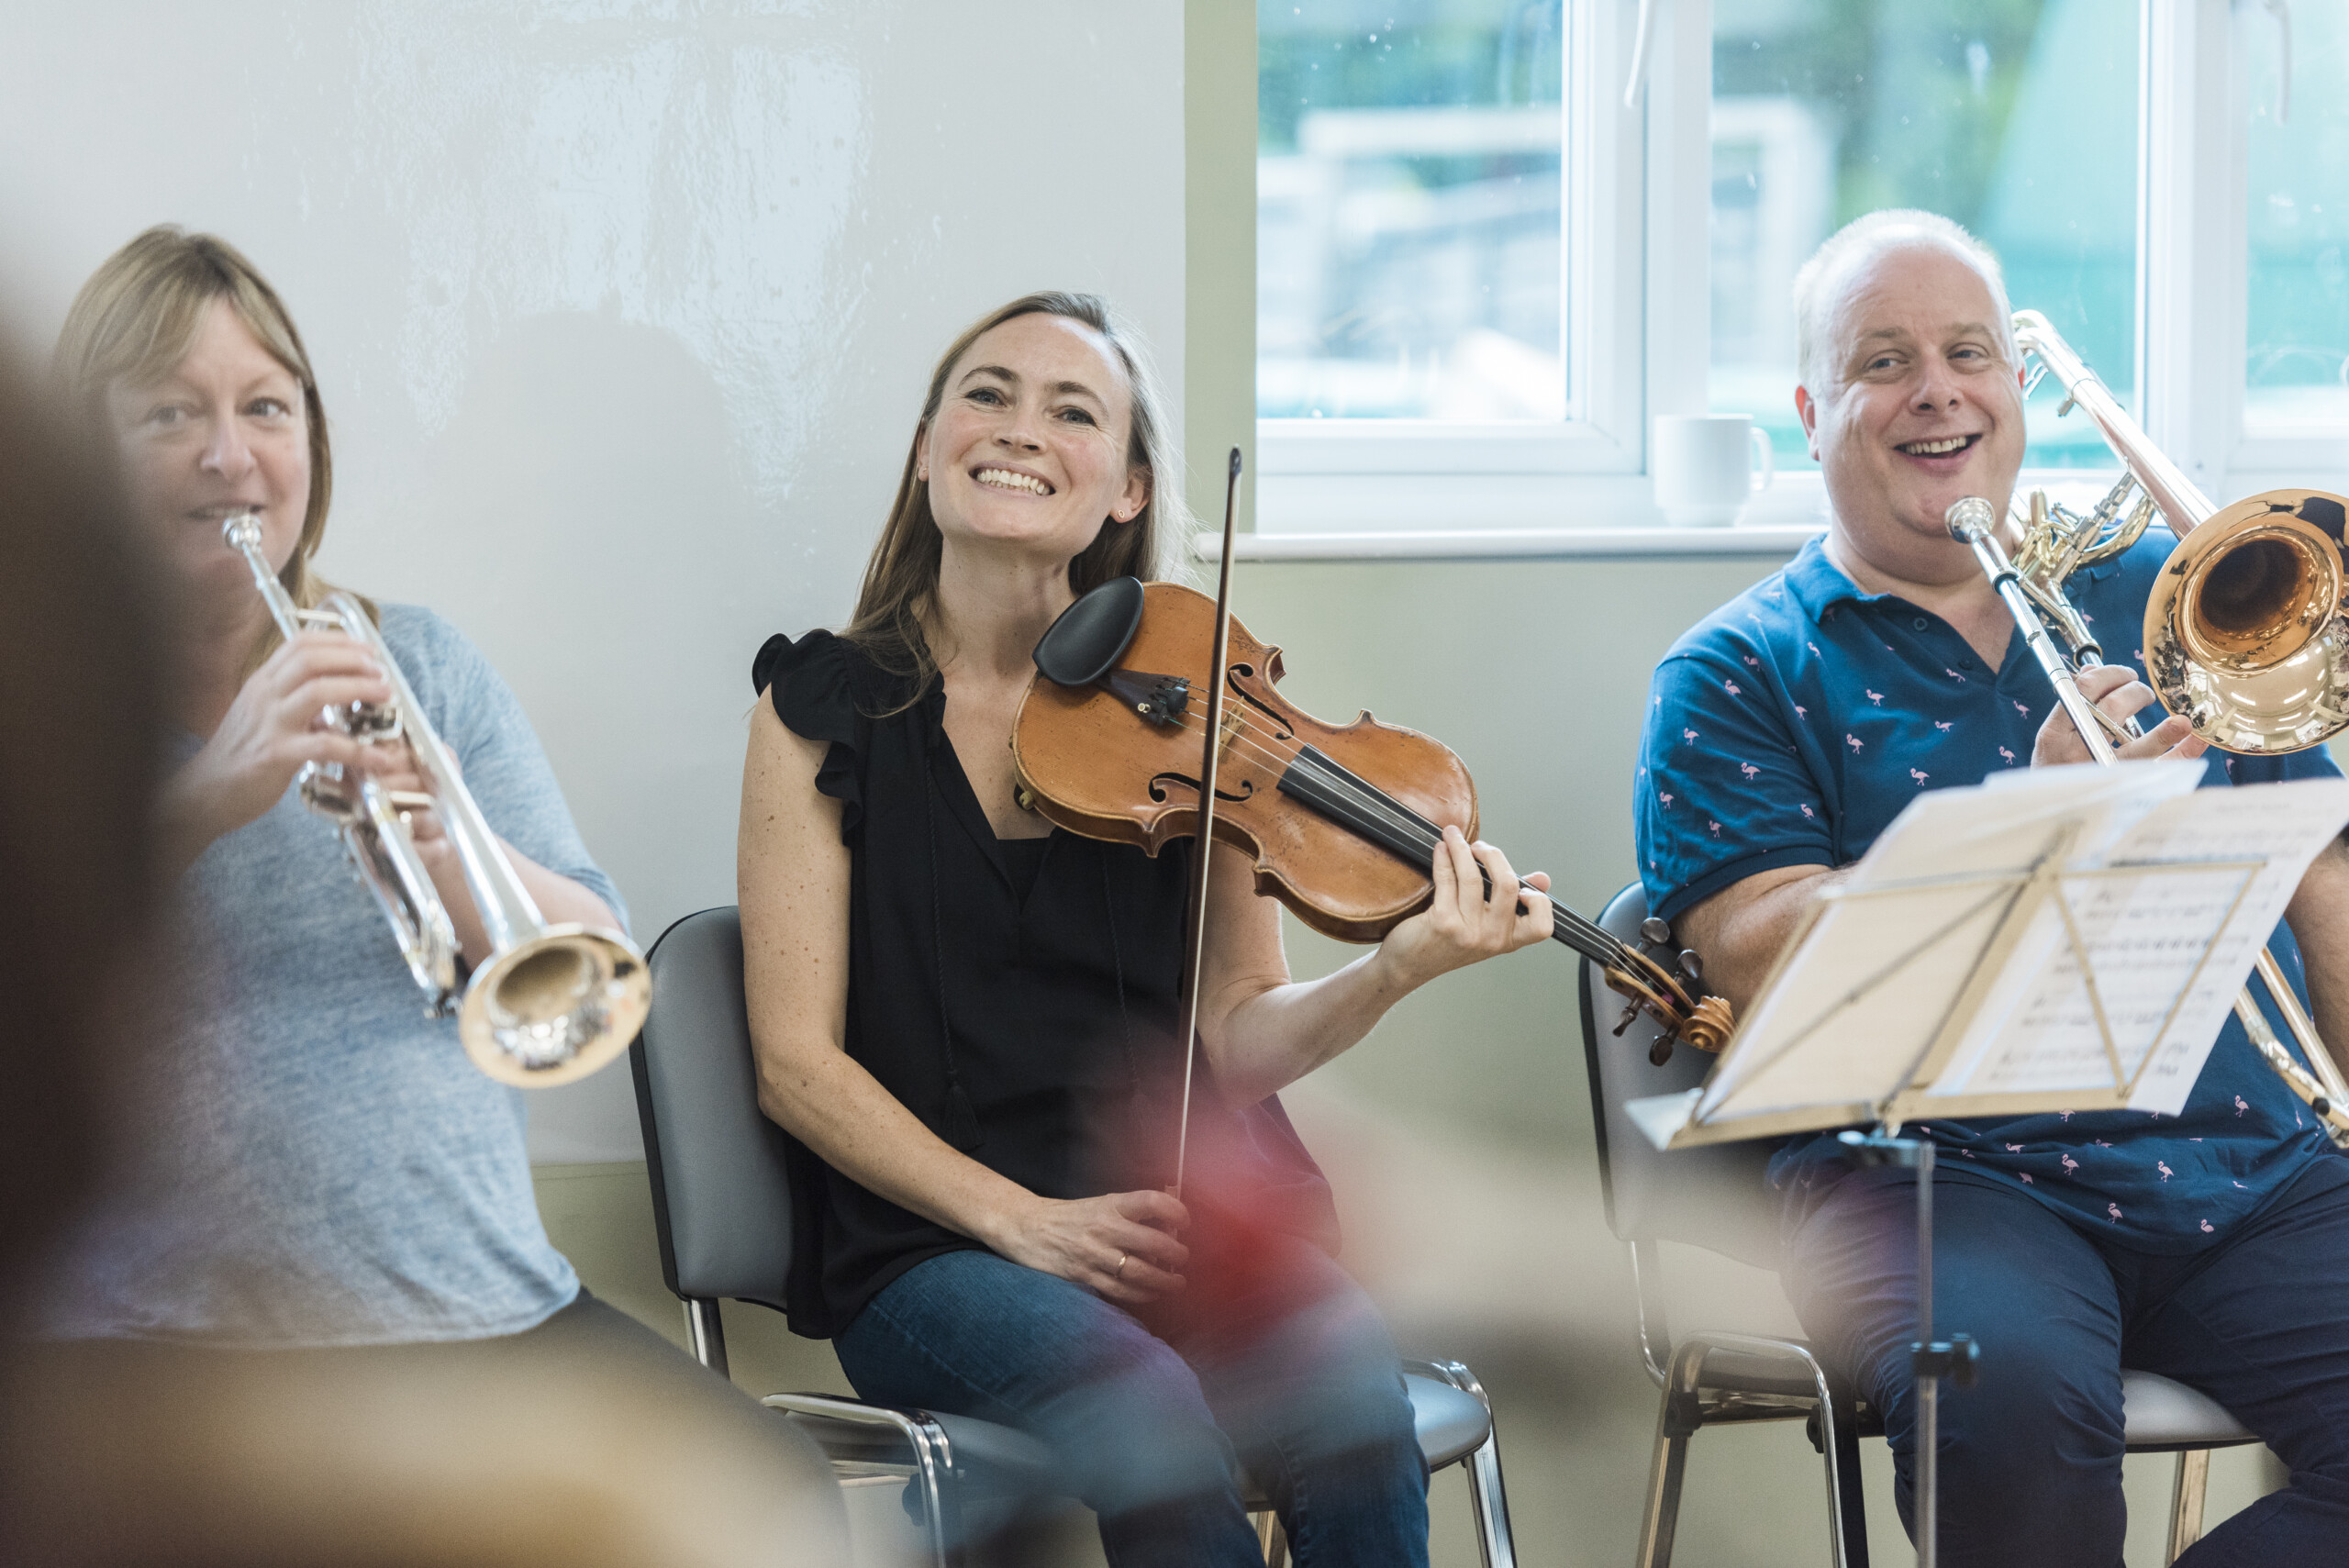 An LPO player smiling